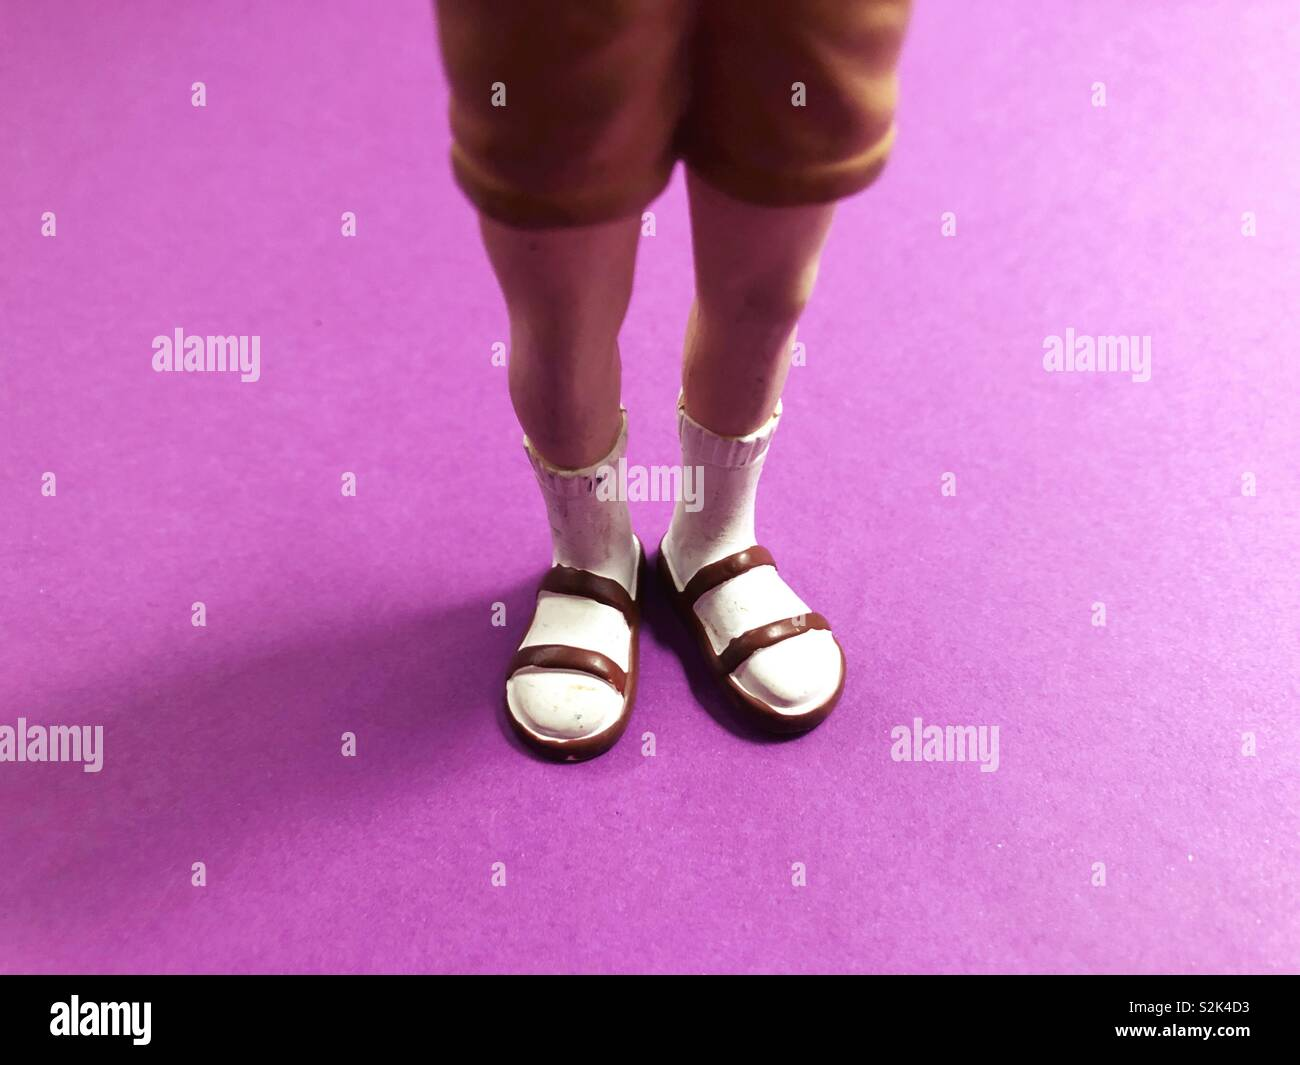 a911ab88bcf White Socks And Sandals Stock Photos   White Socks And Sandals Stock ...